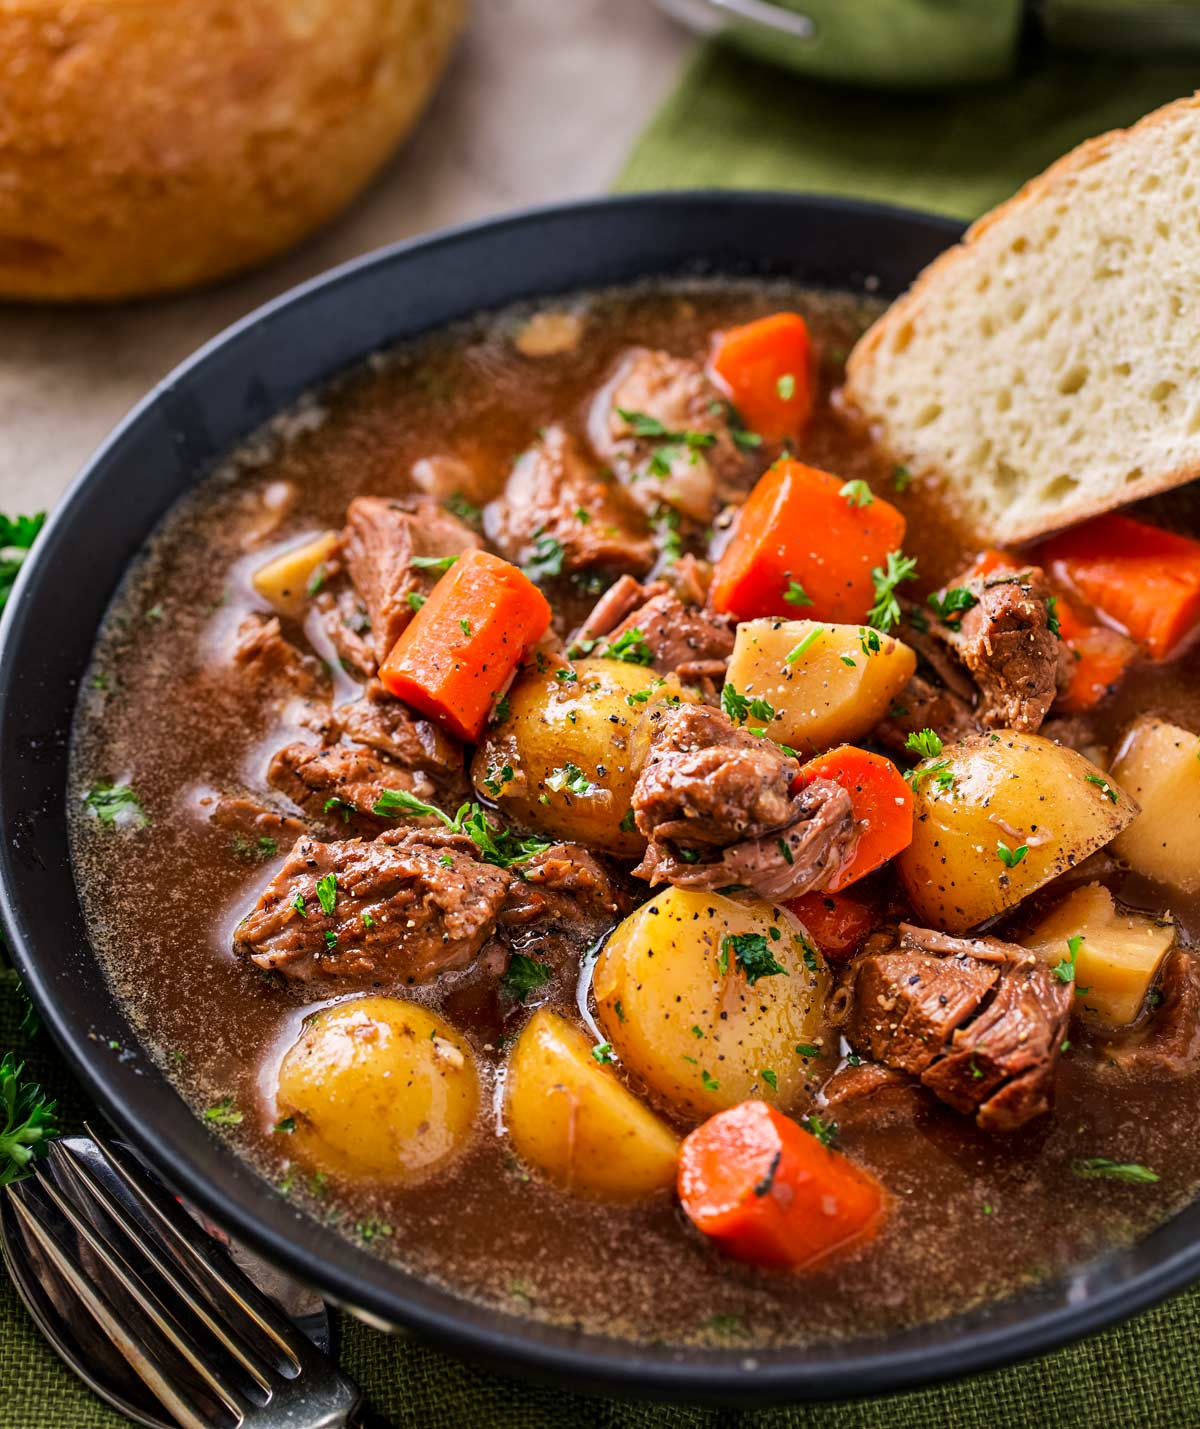 Crockpot Beef Stew with beer and horseradish in a bowl with bread